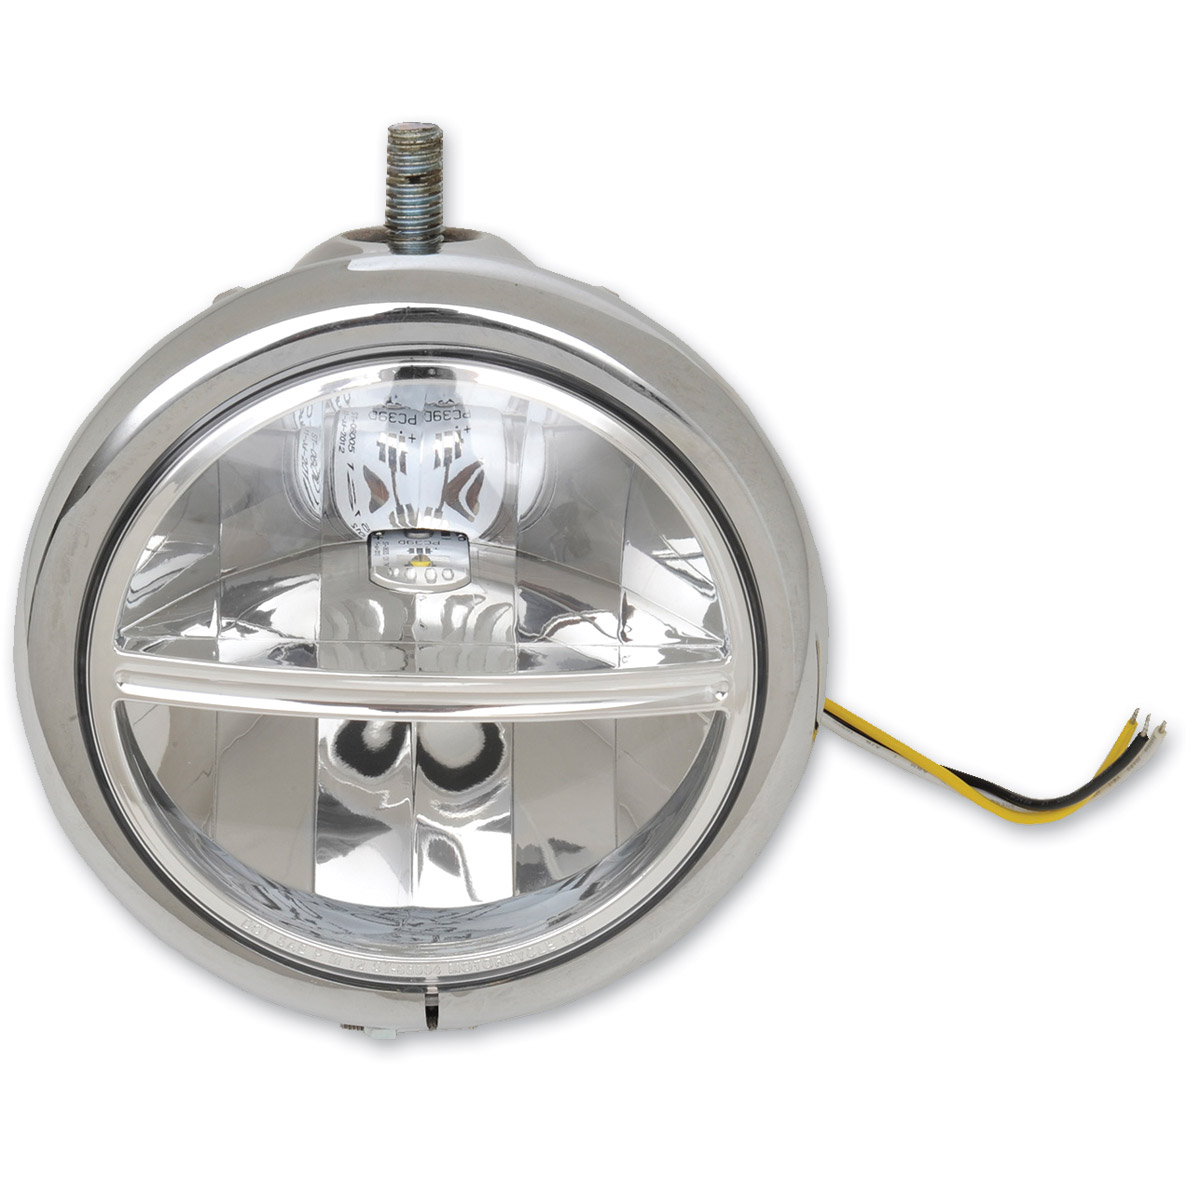 Drag Specialties LED 5-3/4″ Top Mount Headlight Assembly